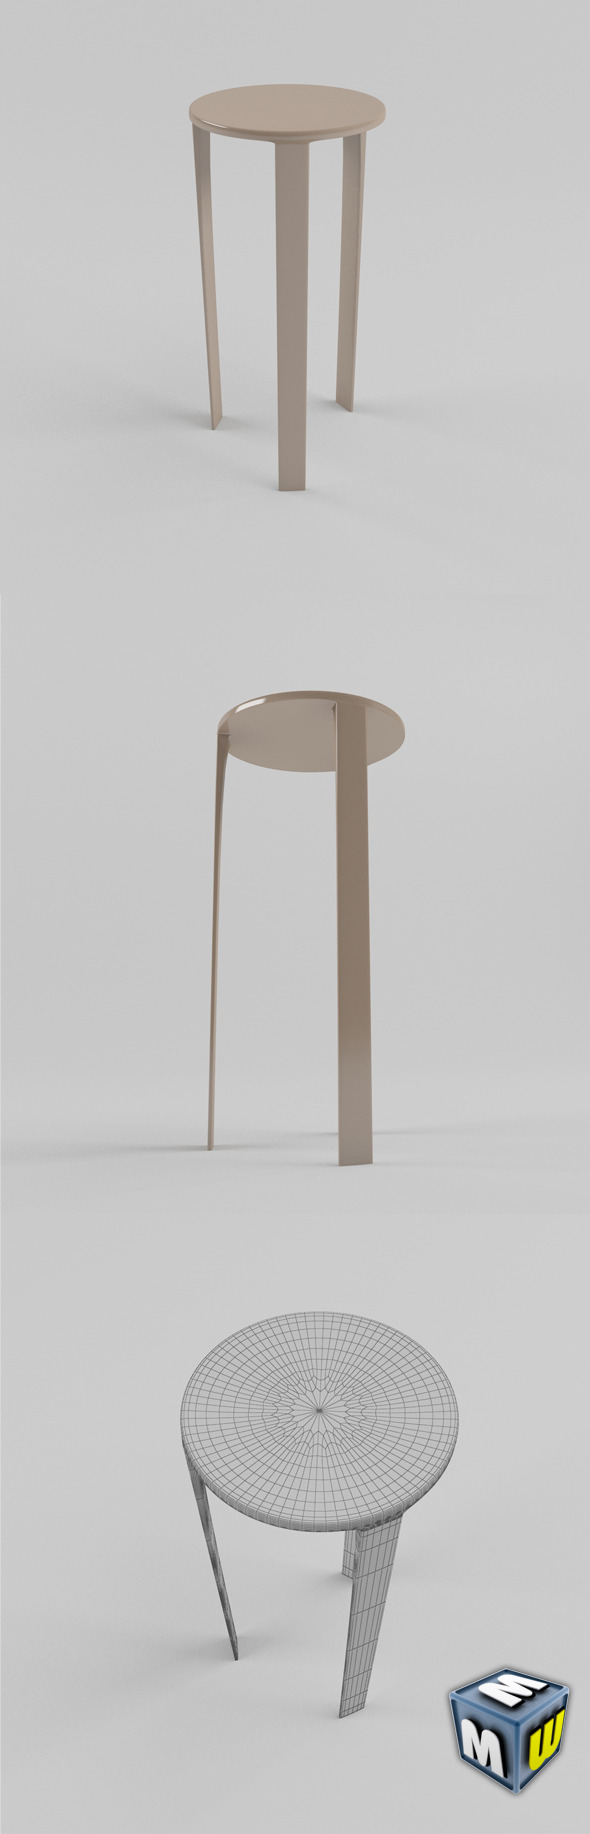 Stool MAX 2011 - 3DOcean Item for Sale